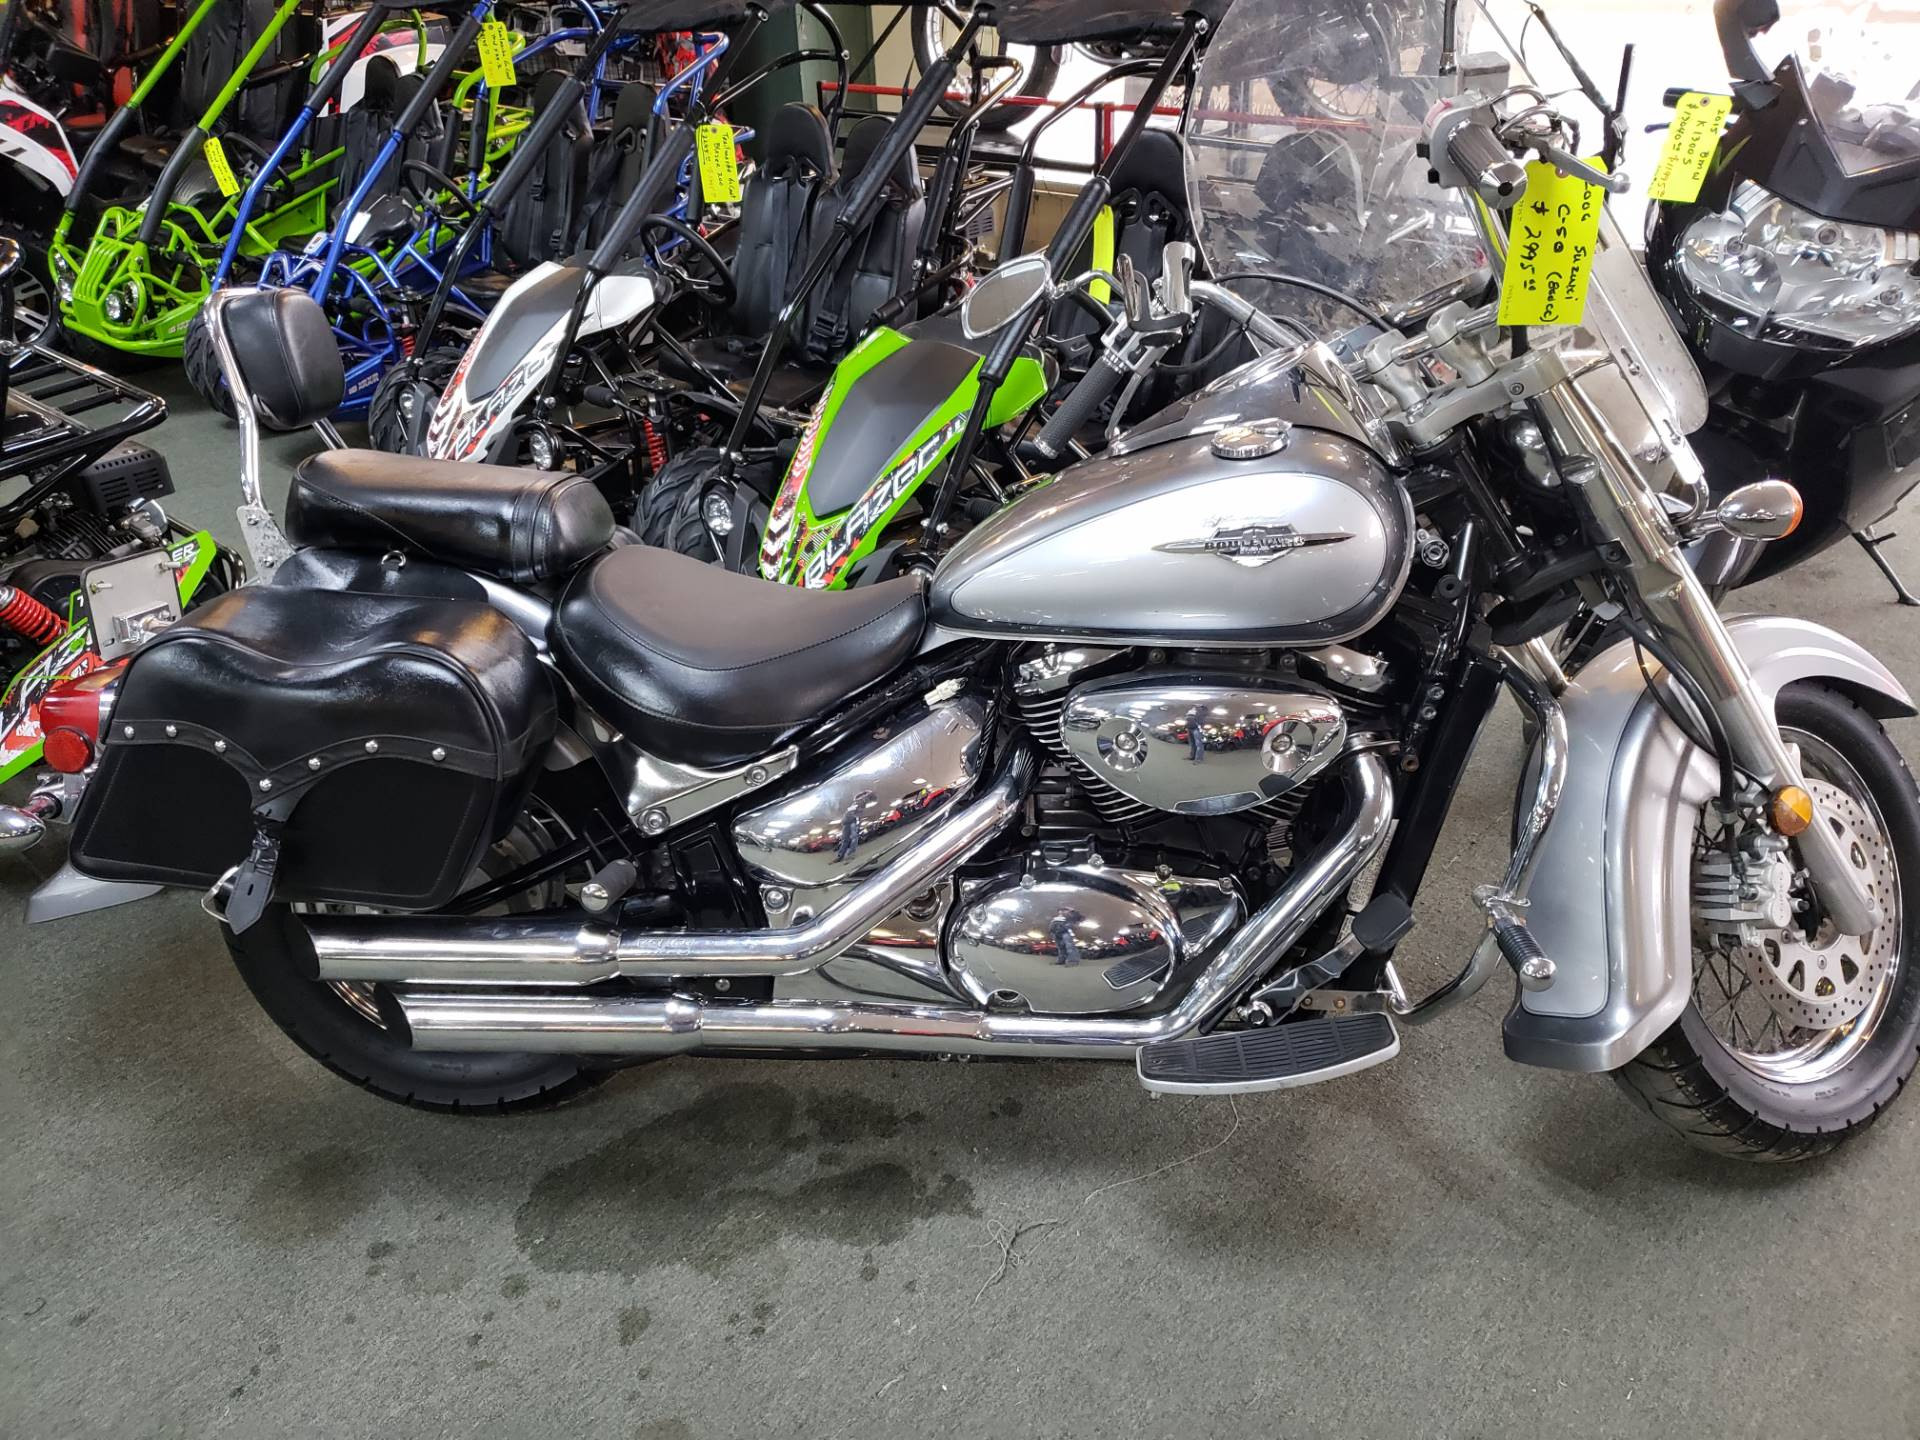 2006 Suzuki Boulevard C50 for sale 39668